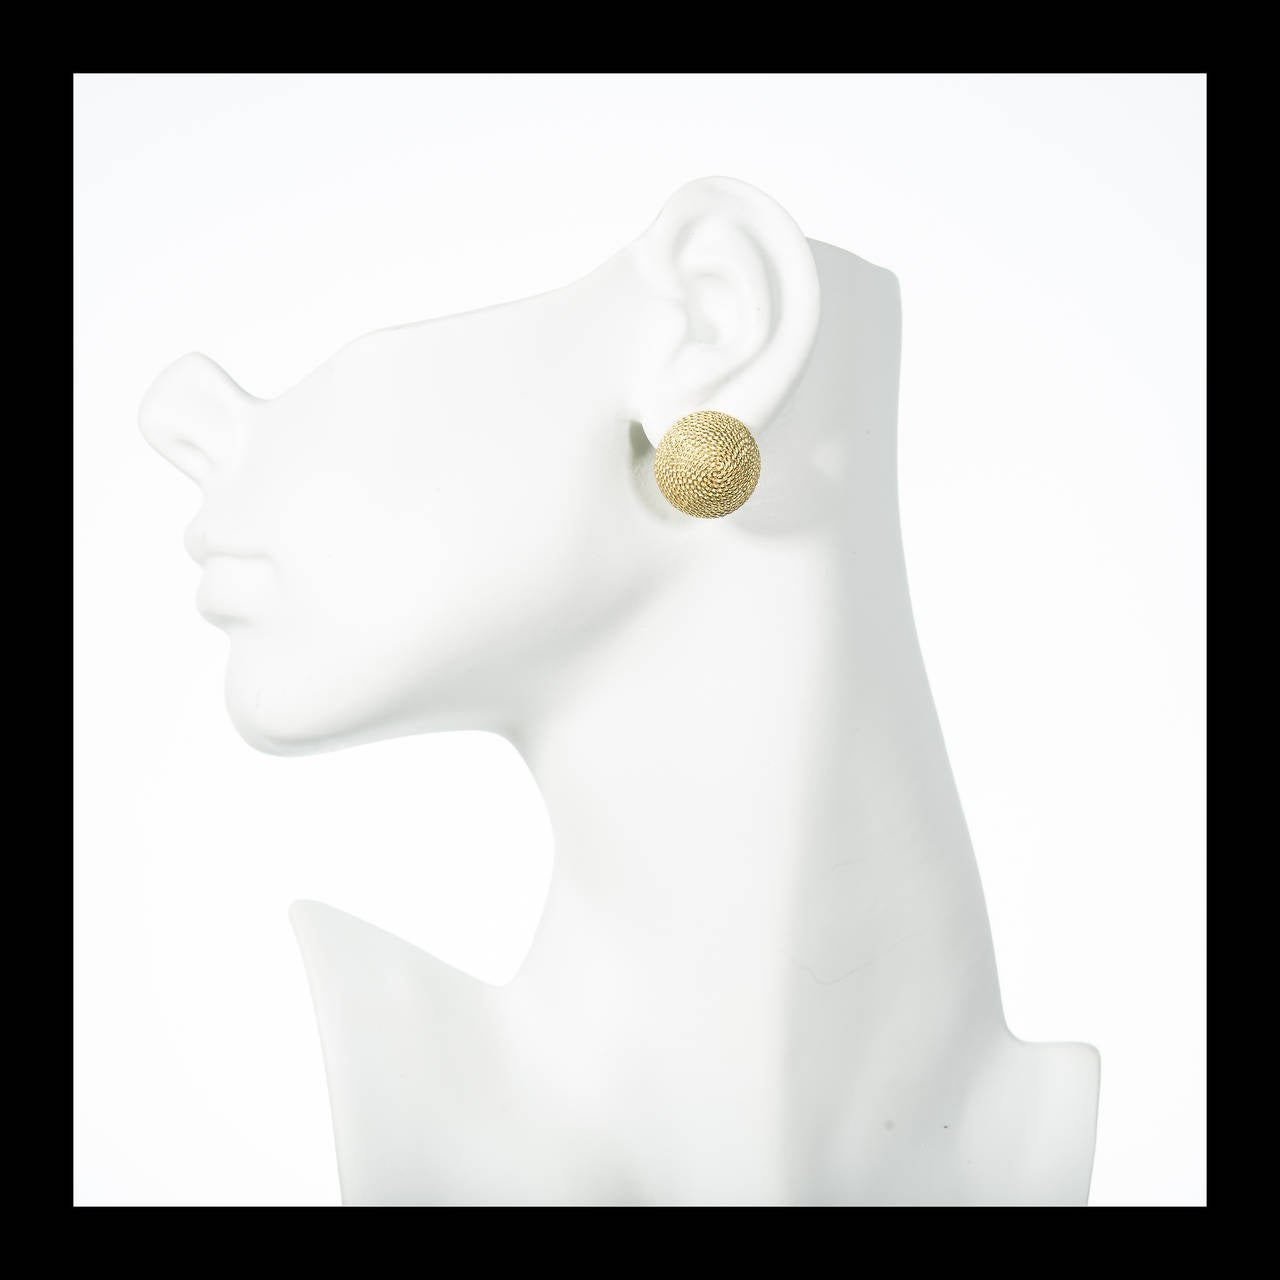 Women's Textured Gold Domed Button Style Earrings For Sale